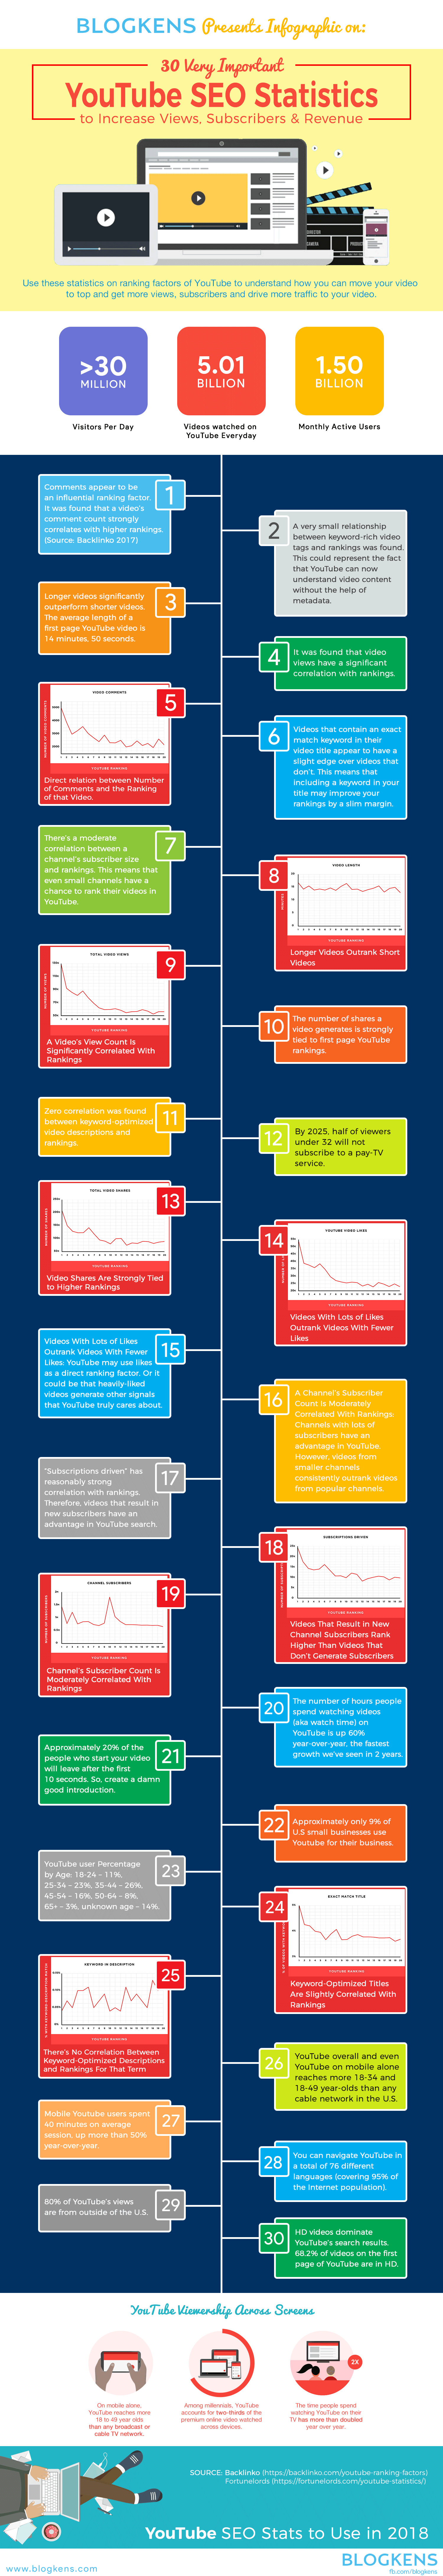 YouTube Stats: All YouTube Video Statistics infographic